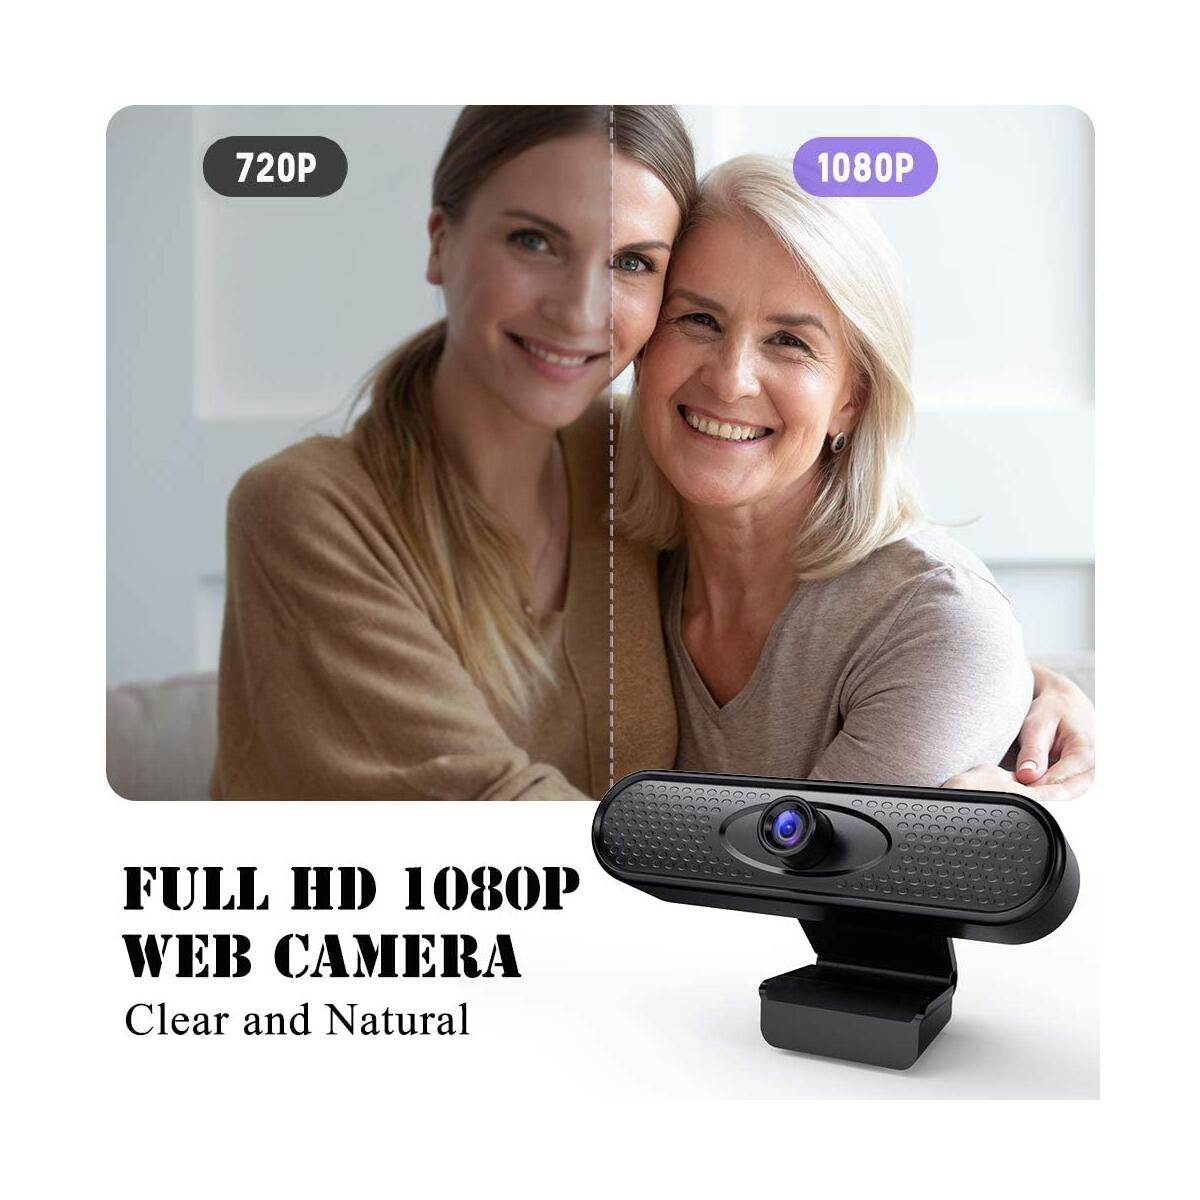 Webcam with Microphone - 1080P HD Web Camera with Tripod & Privacy Cover, 90° Adjustable Streaming USB Webcam for Desktop Laptop, PC Cam with 110° Wide Angle Lens for Video Calling Recording Gaming